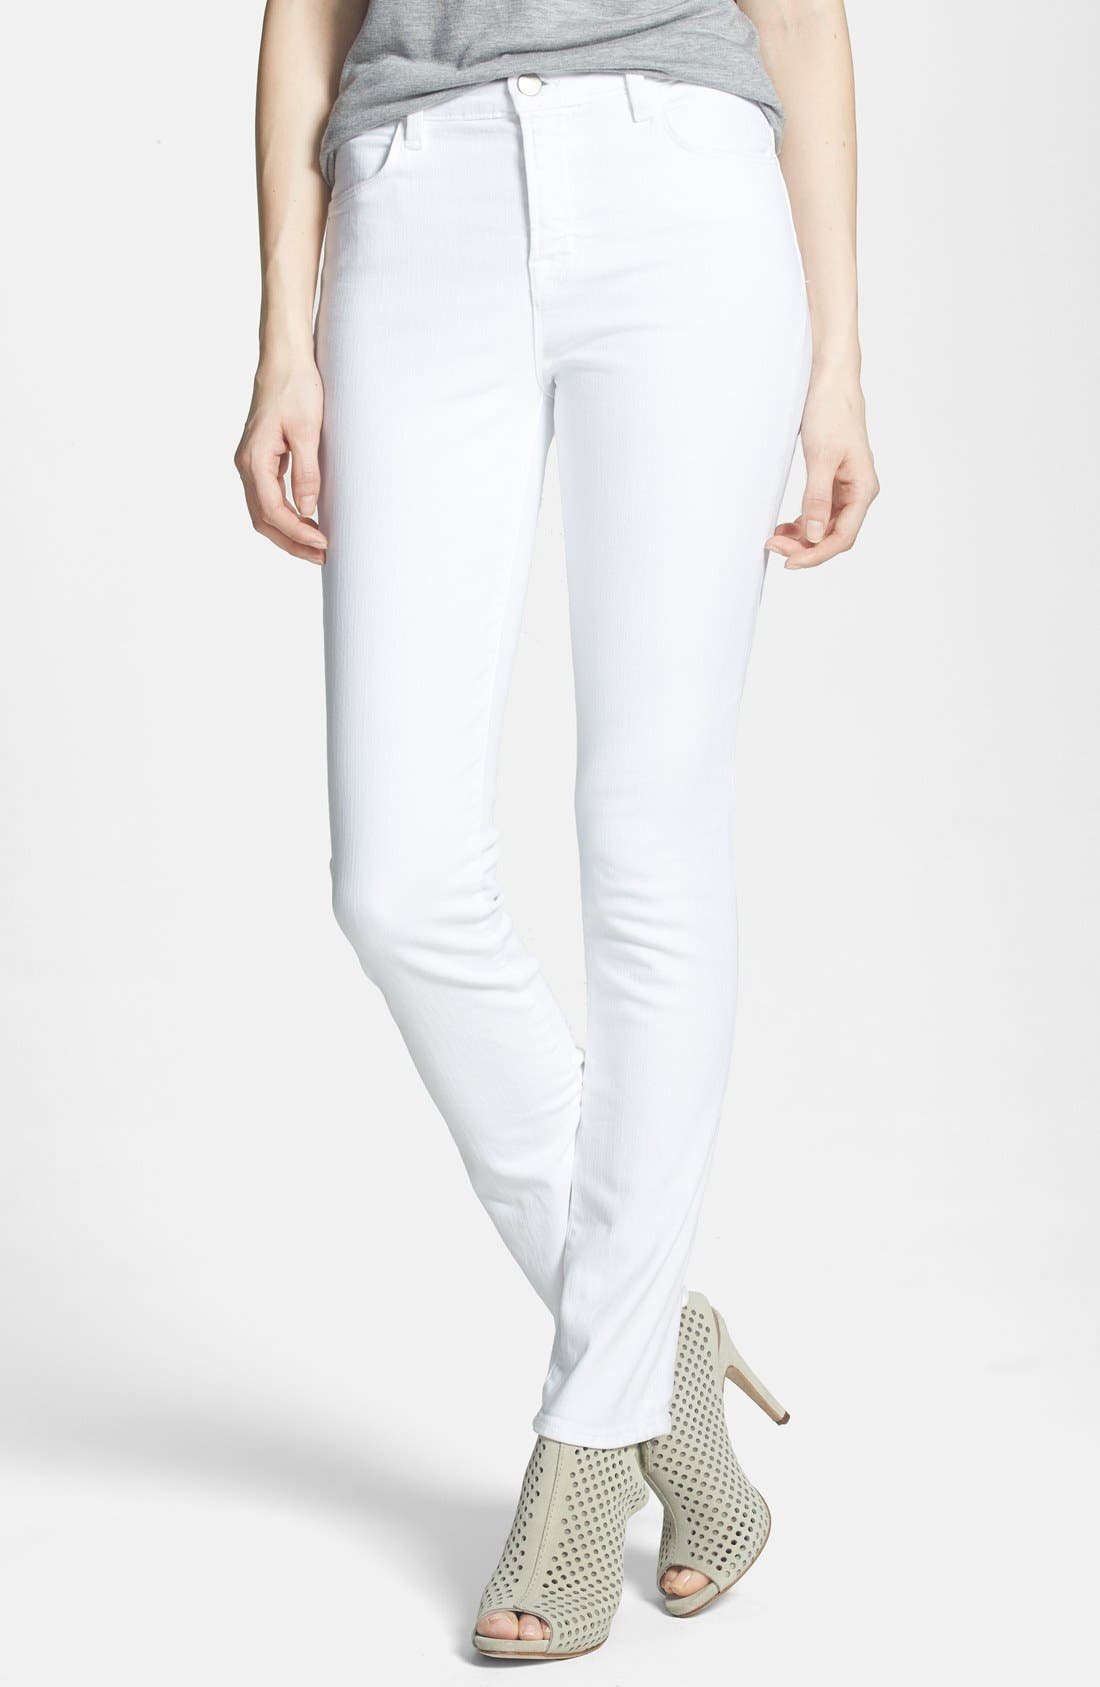 Alternate Image 1 Selected - J Brand 'Rail' High Rise Skinny Jeans (Blanc)